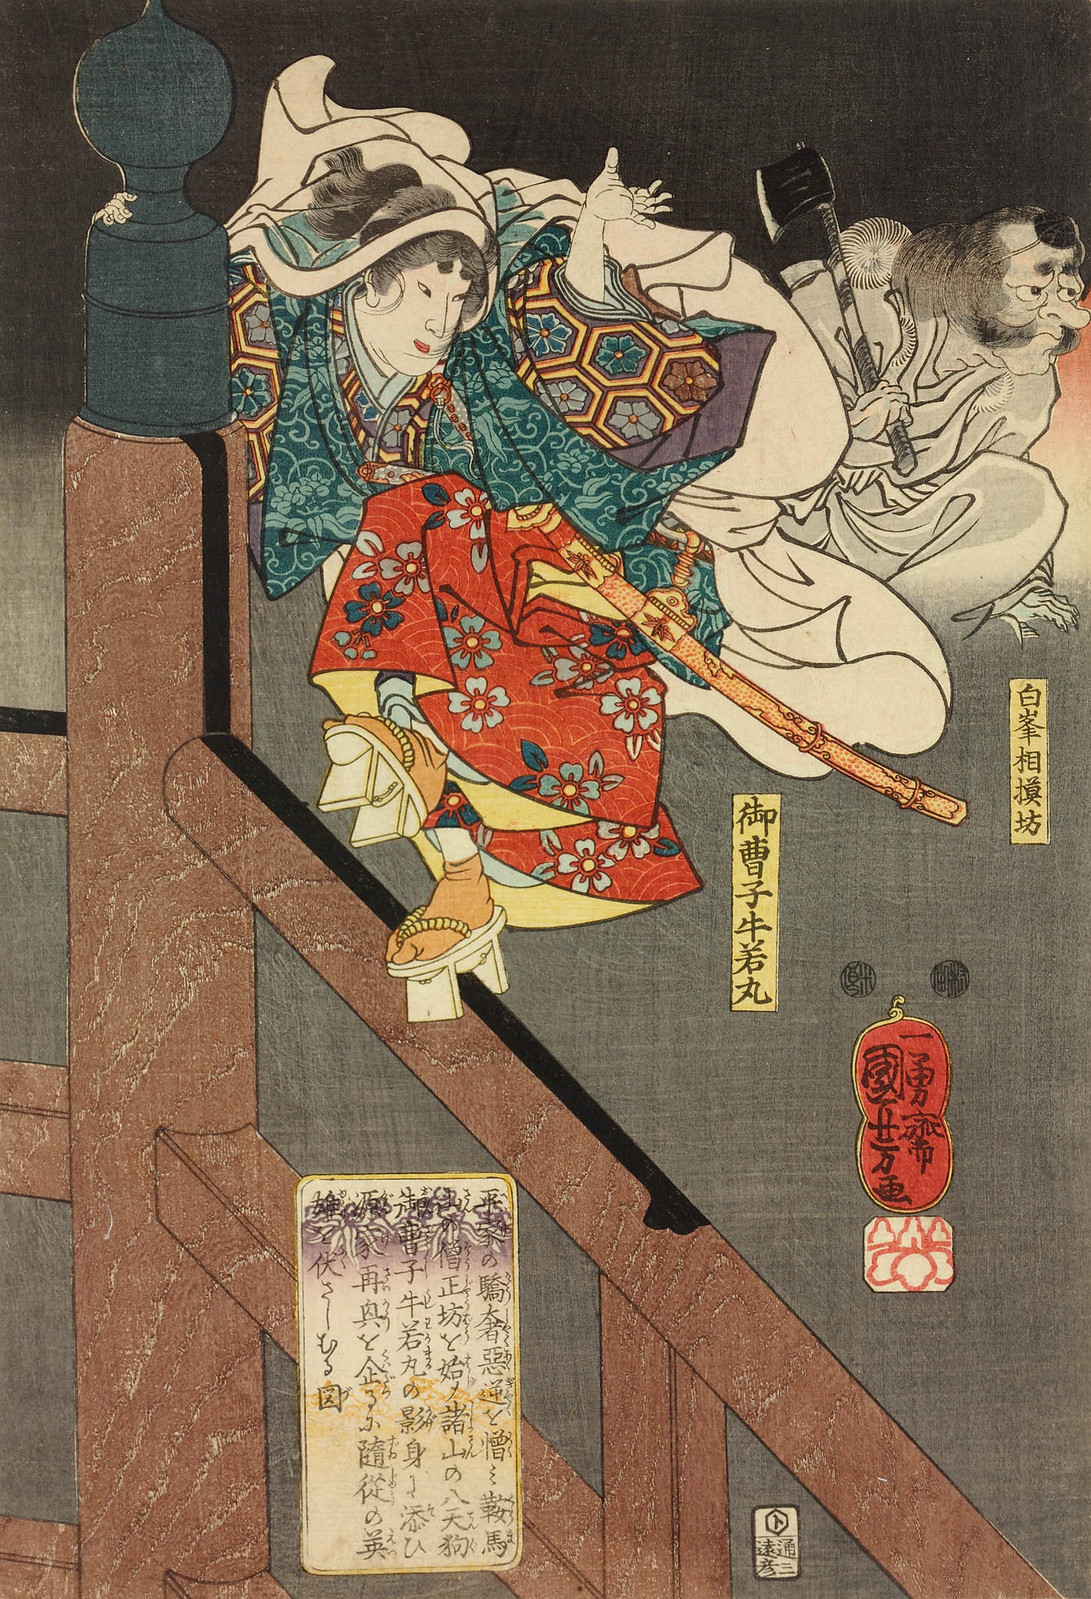 Utagawa Kuniyoshi - Ushiwakamaru (Yoshitsune) Fighting Benkei with the Help of the Tengu, 1847-50 (leftpanel)